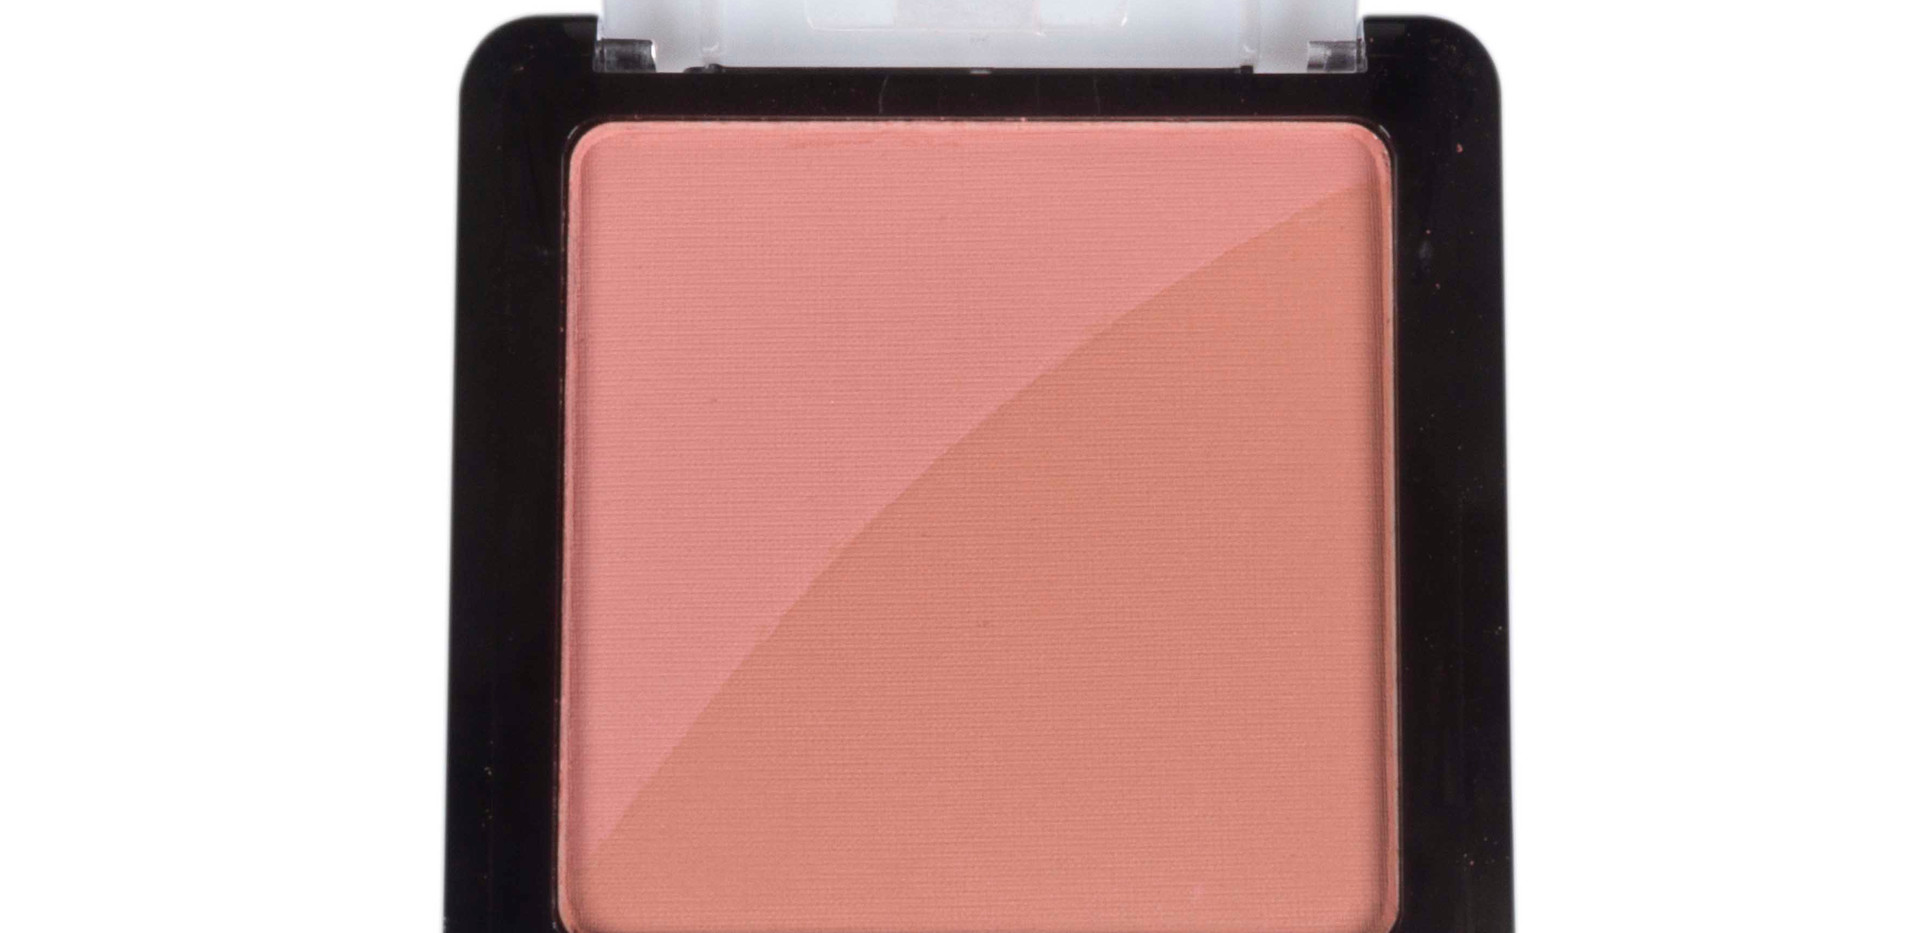 Blush Duo Natural Blushed Dapop - HB96814 (cor 4)